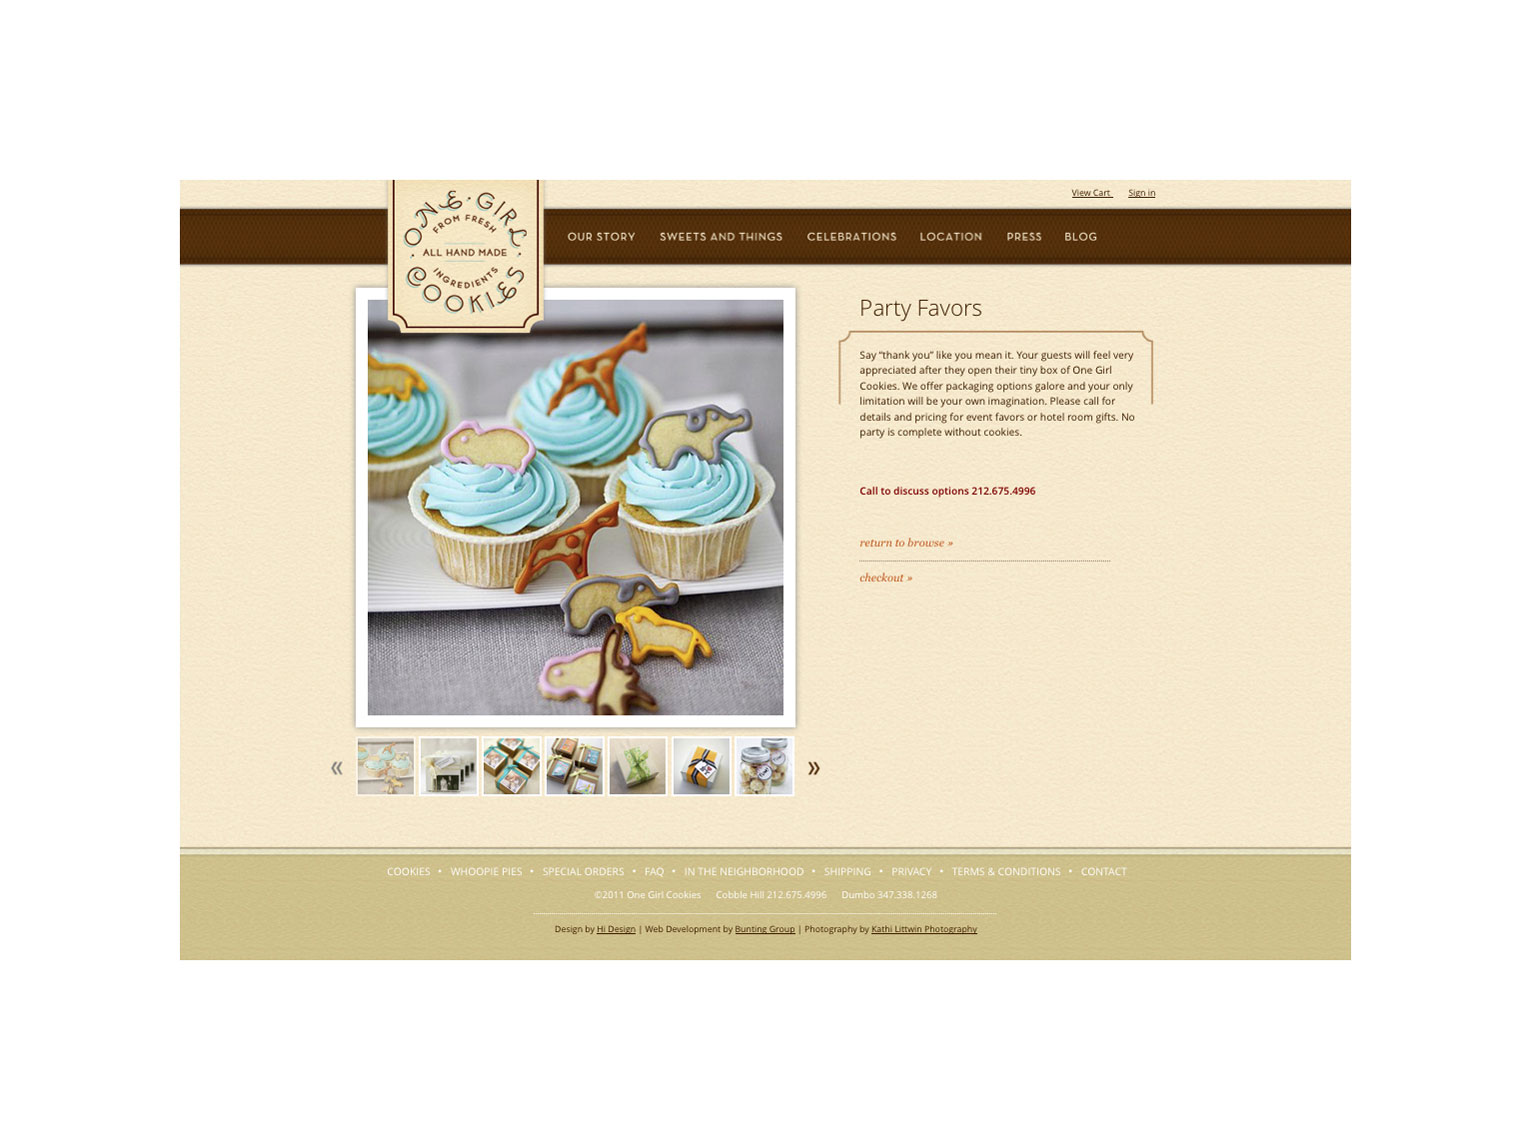 Kathi_Littwin_Photography_One_Girl_Cookies_website_4023